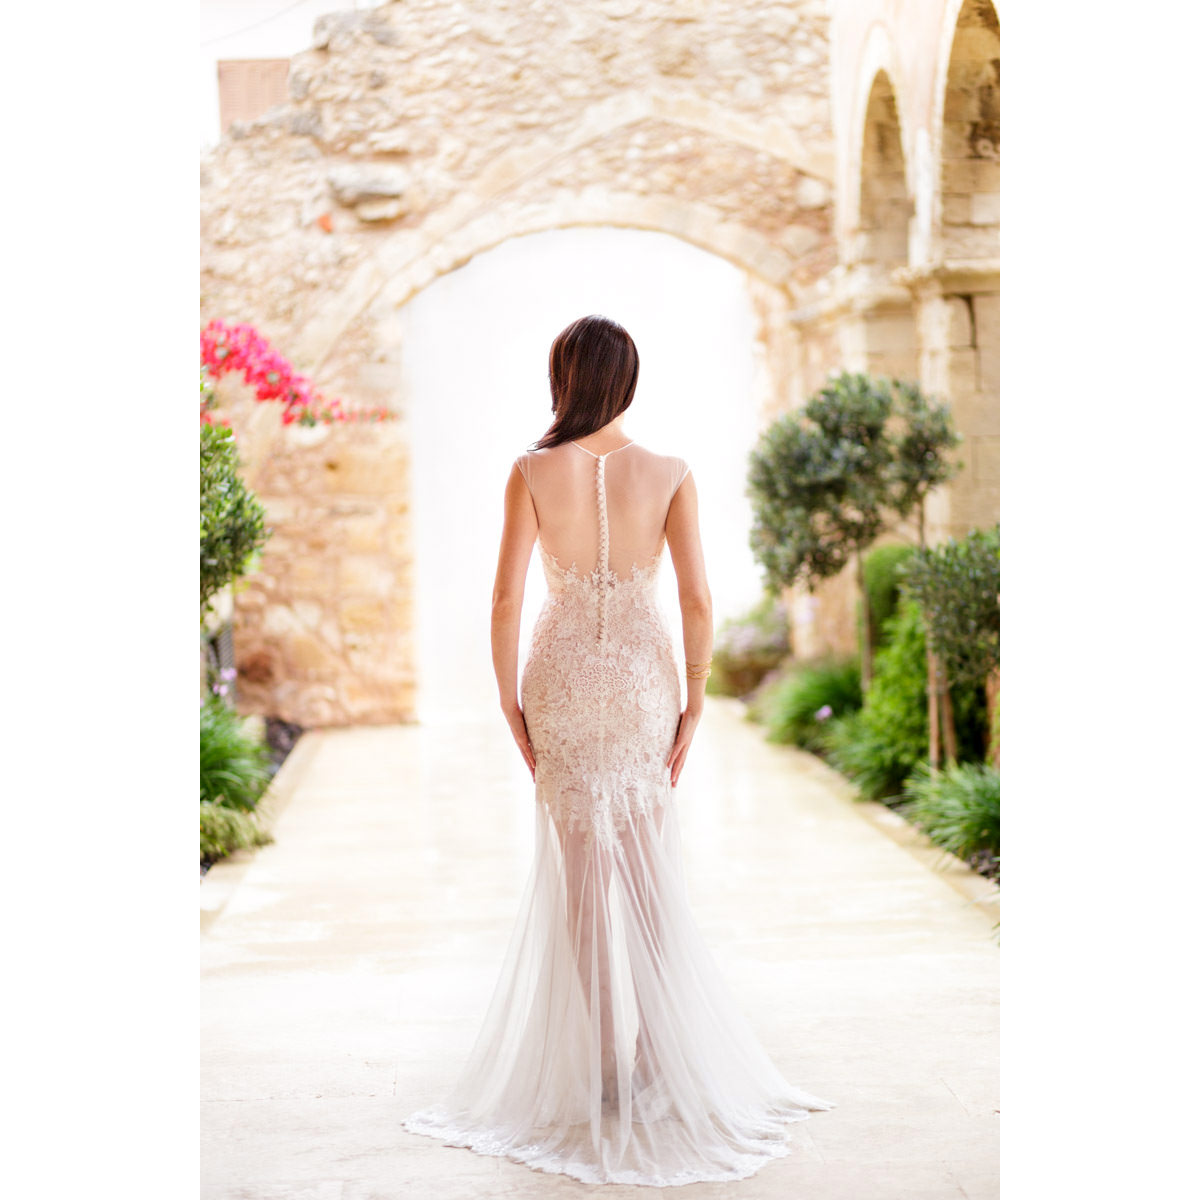 wedding photography in Chania